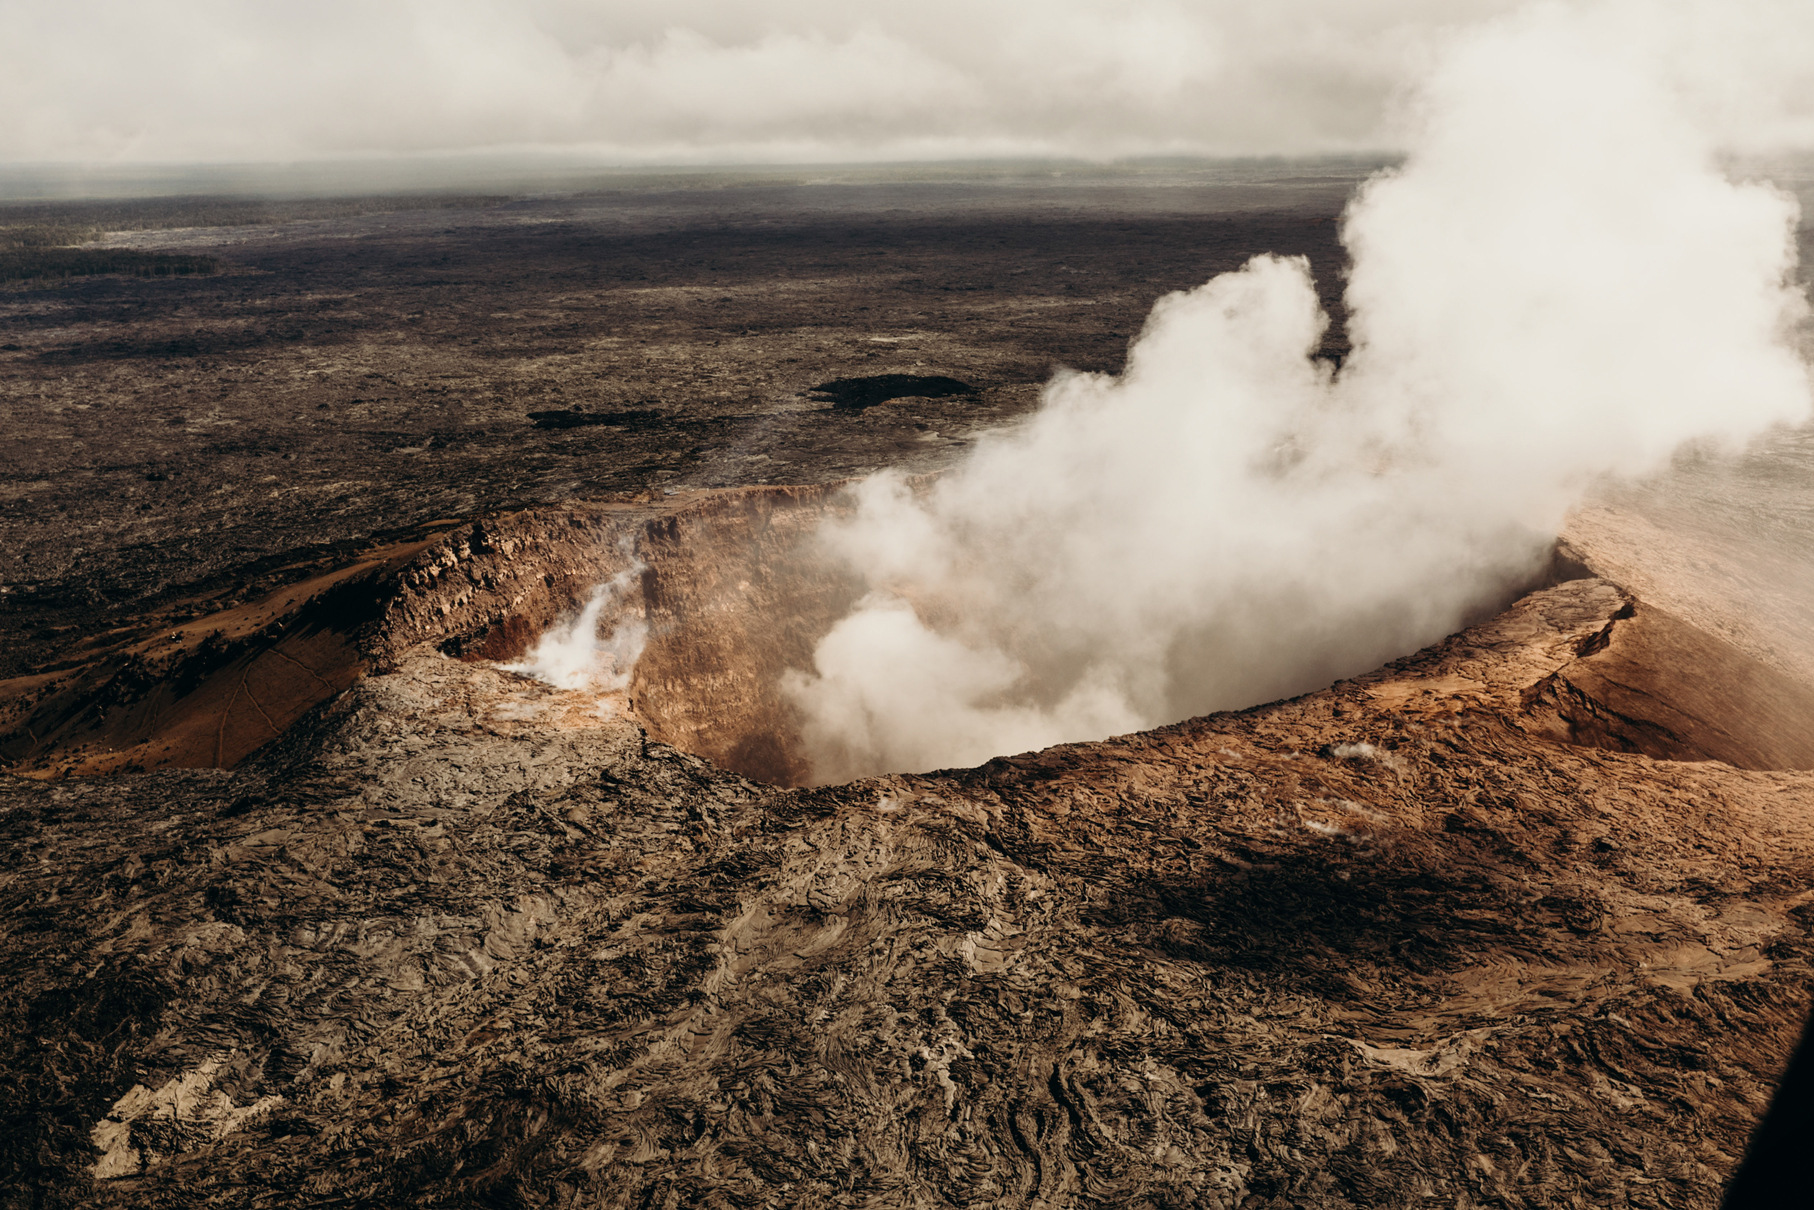 Helicopter over Hawaii Volcanoes National Park